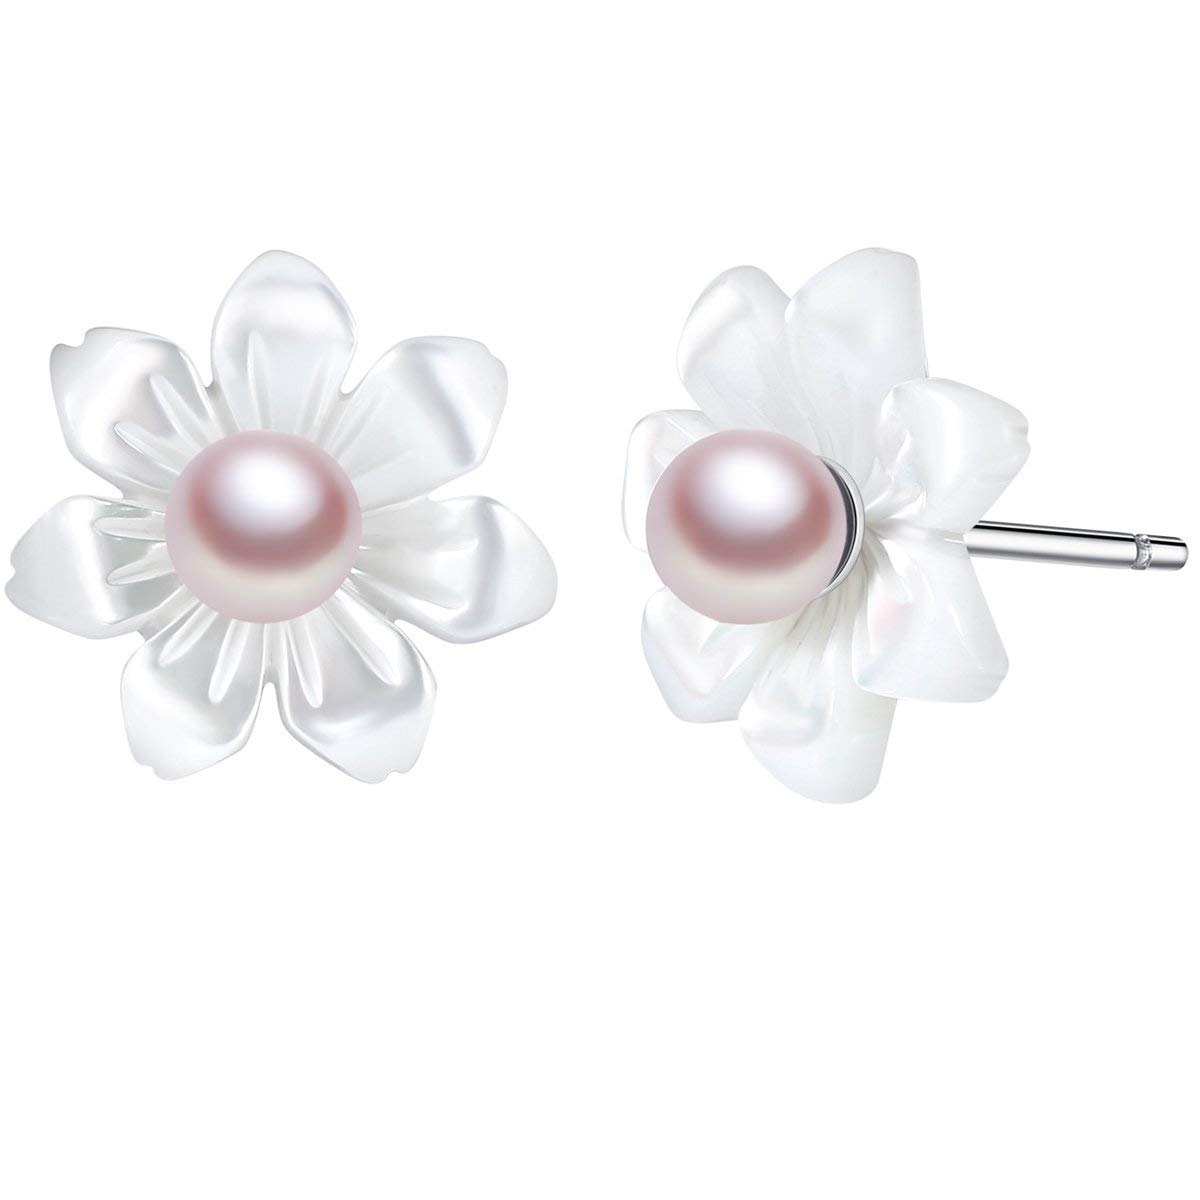 Cute White Shell Flower Sterling Silver Stud Earrings for Girls [7 Petals]